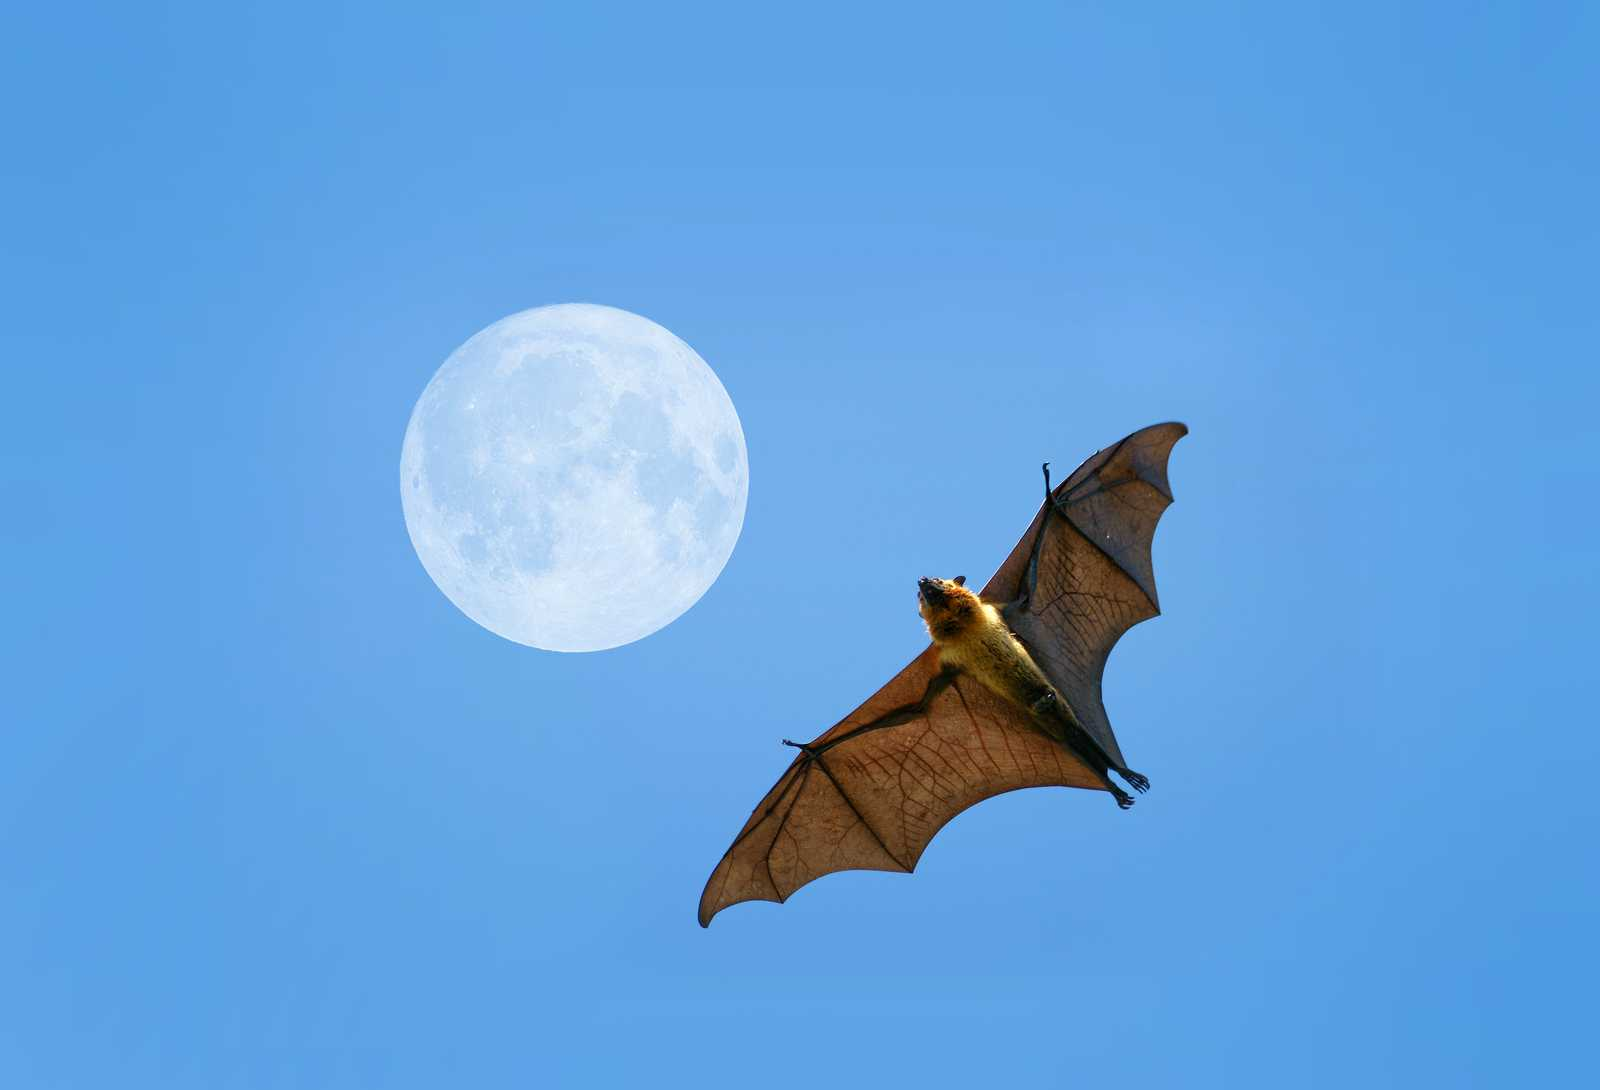 Do bats migrate or hibernate?